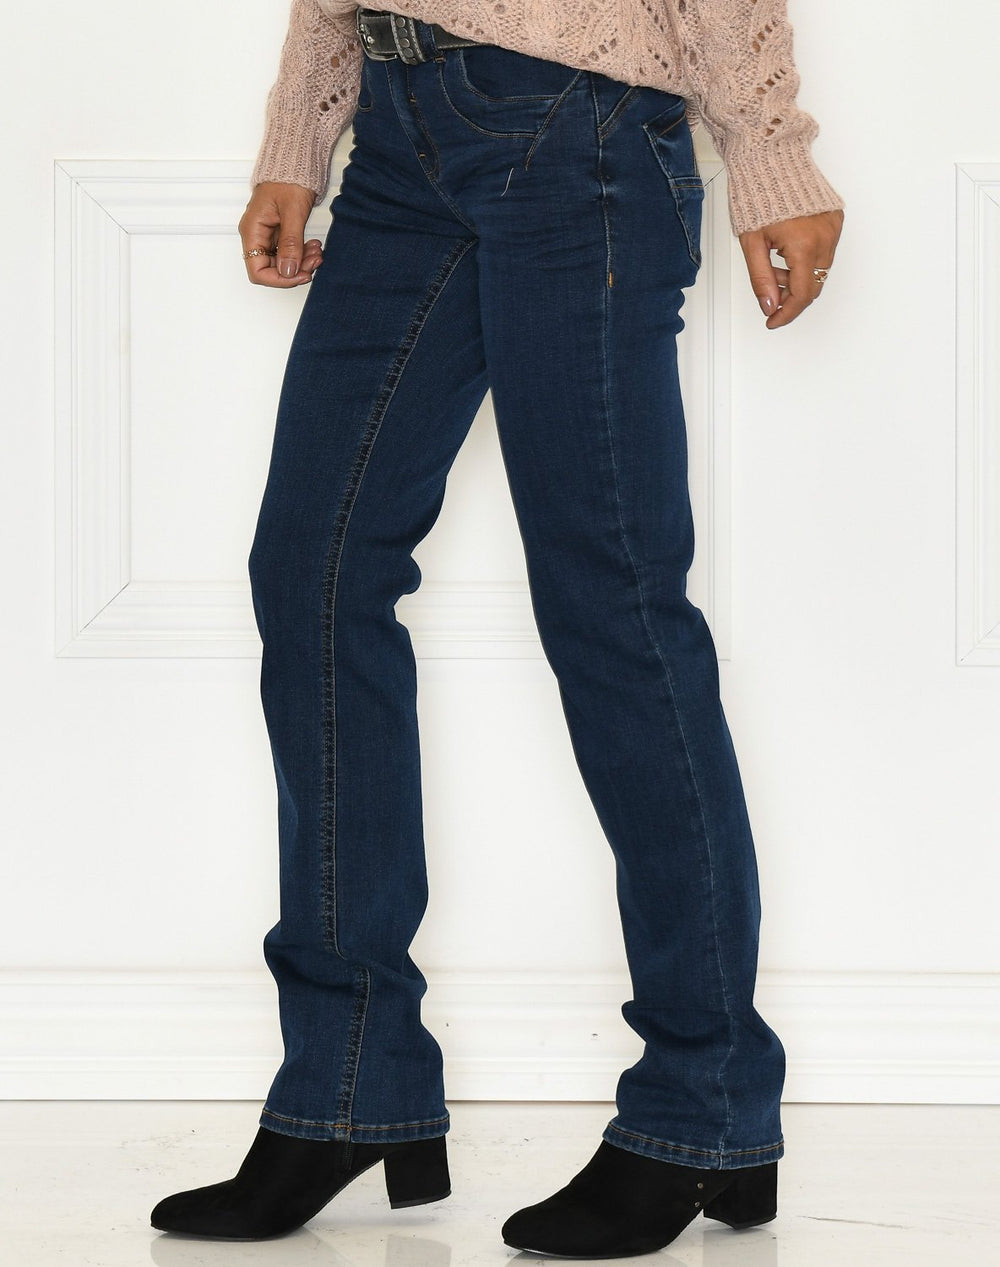 Fransa FRLover 4 pants glossy blue denim - Online-Mode